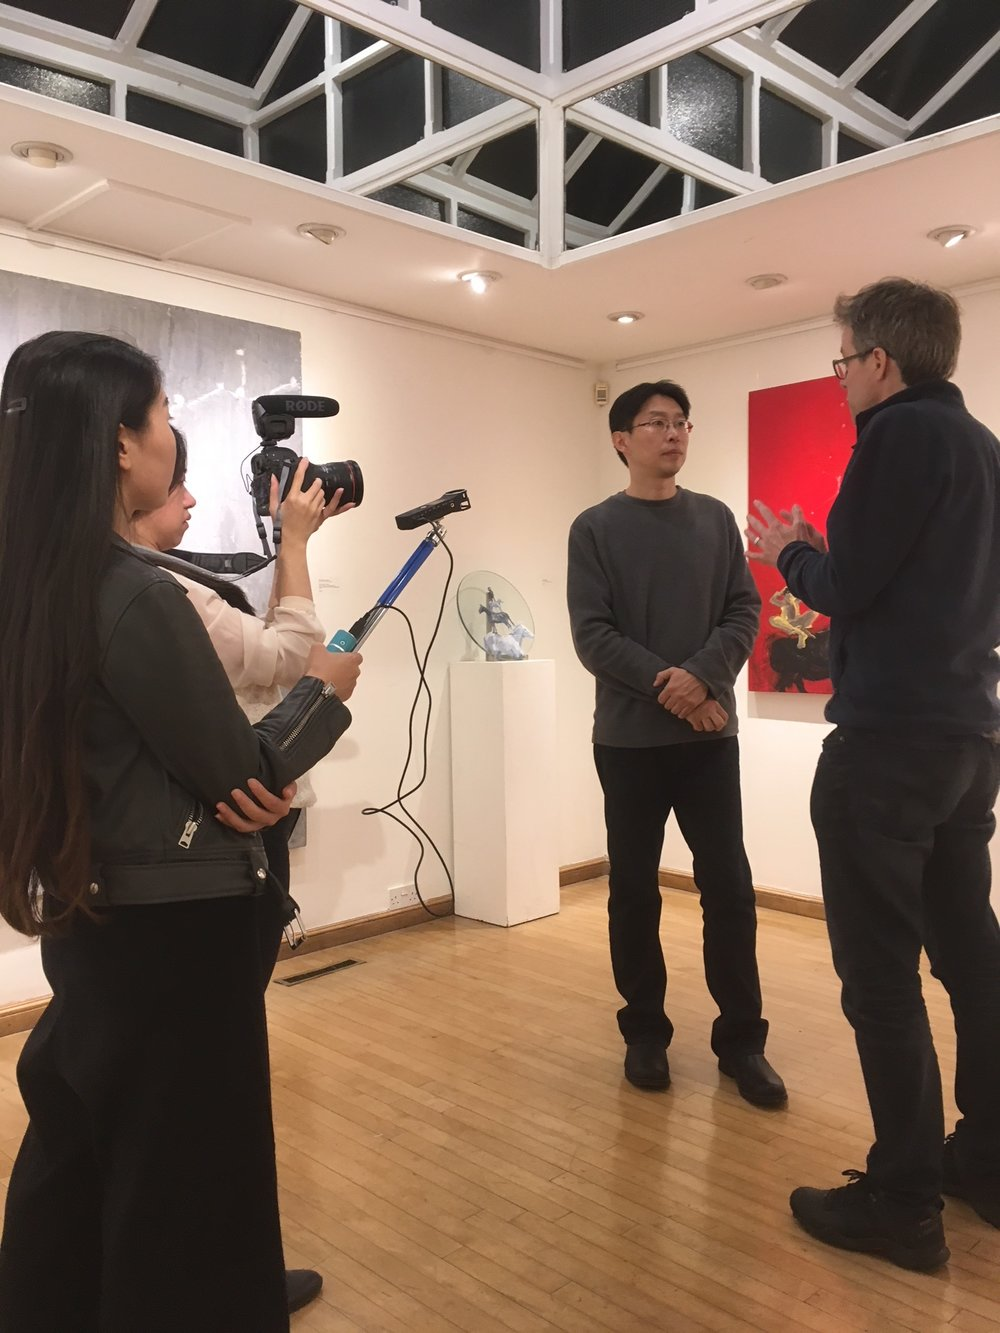 Thrilled to have a filmed interview of Gao Xiang by Jonathan Kearney, artist and Postgraduate Programme Director at Camberwell College of Arts. Stay tuned for the video.